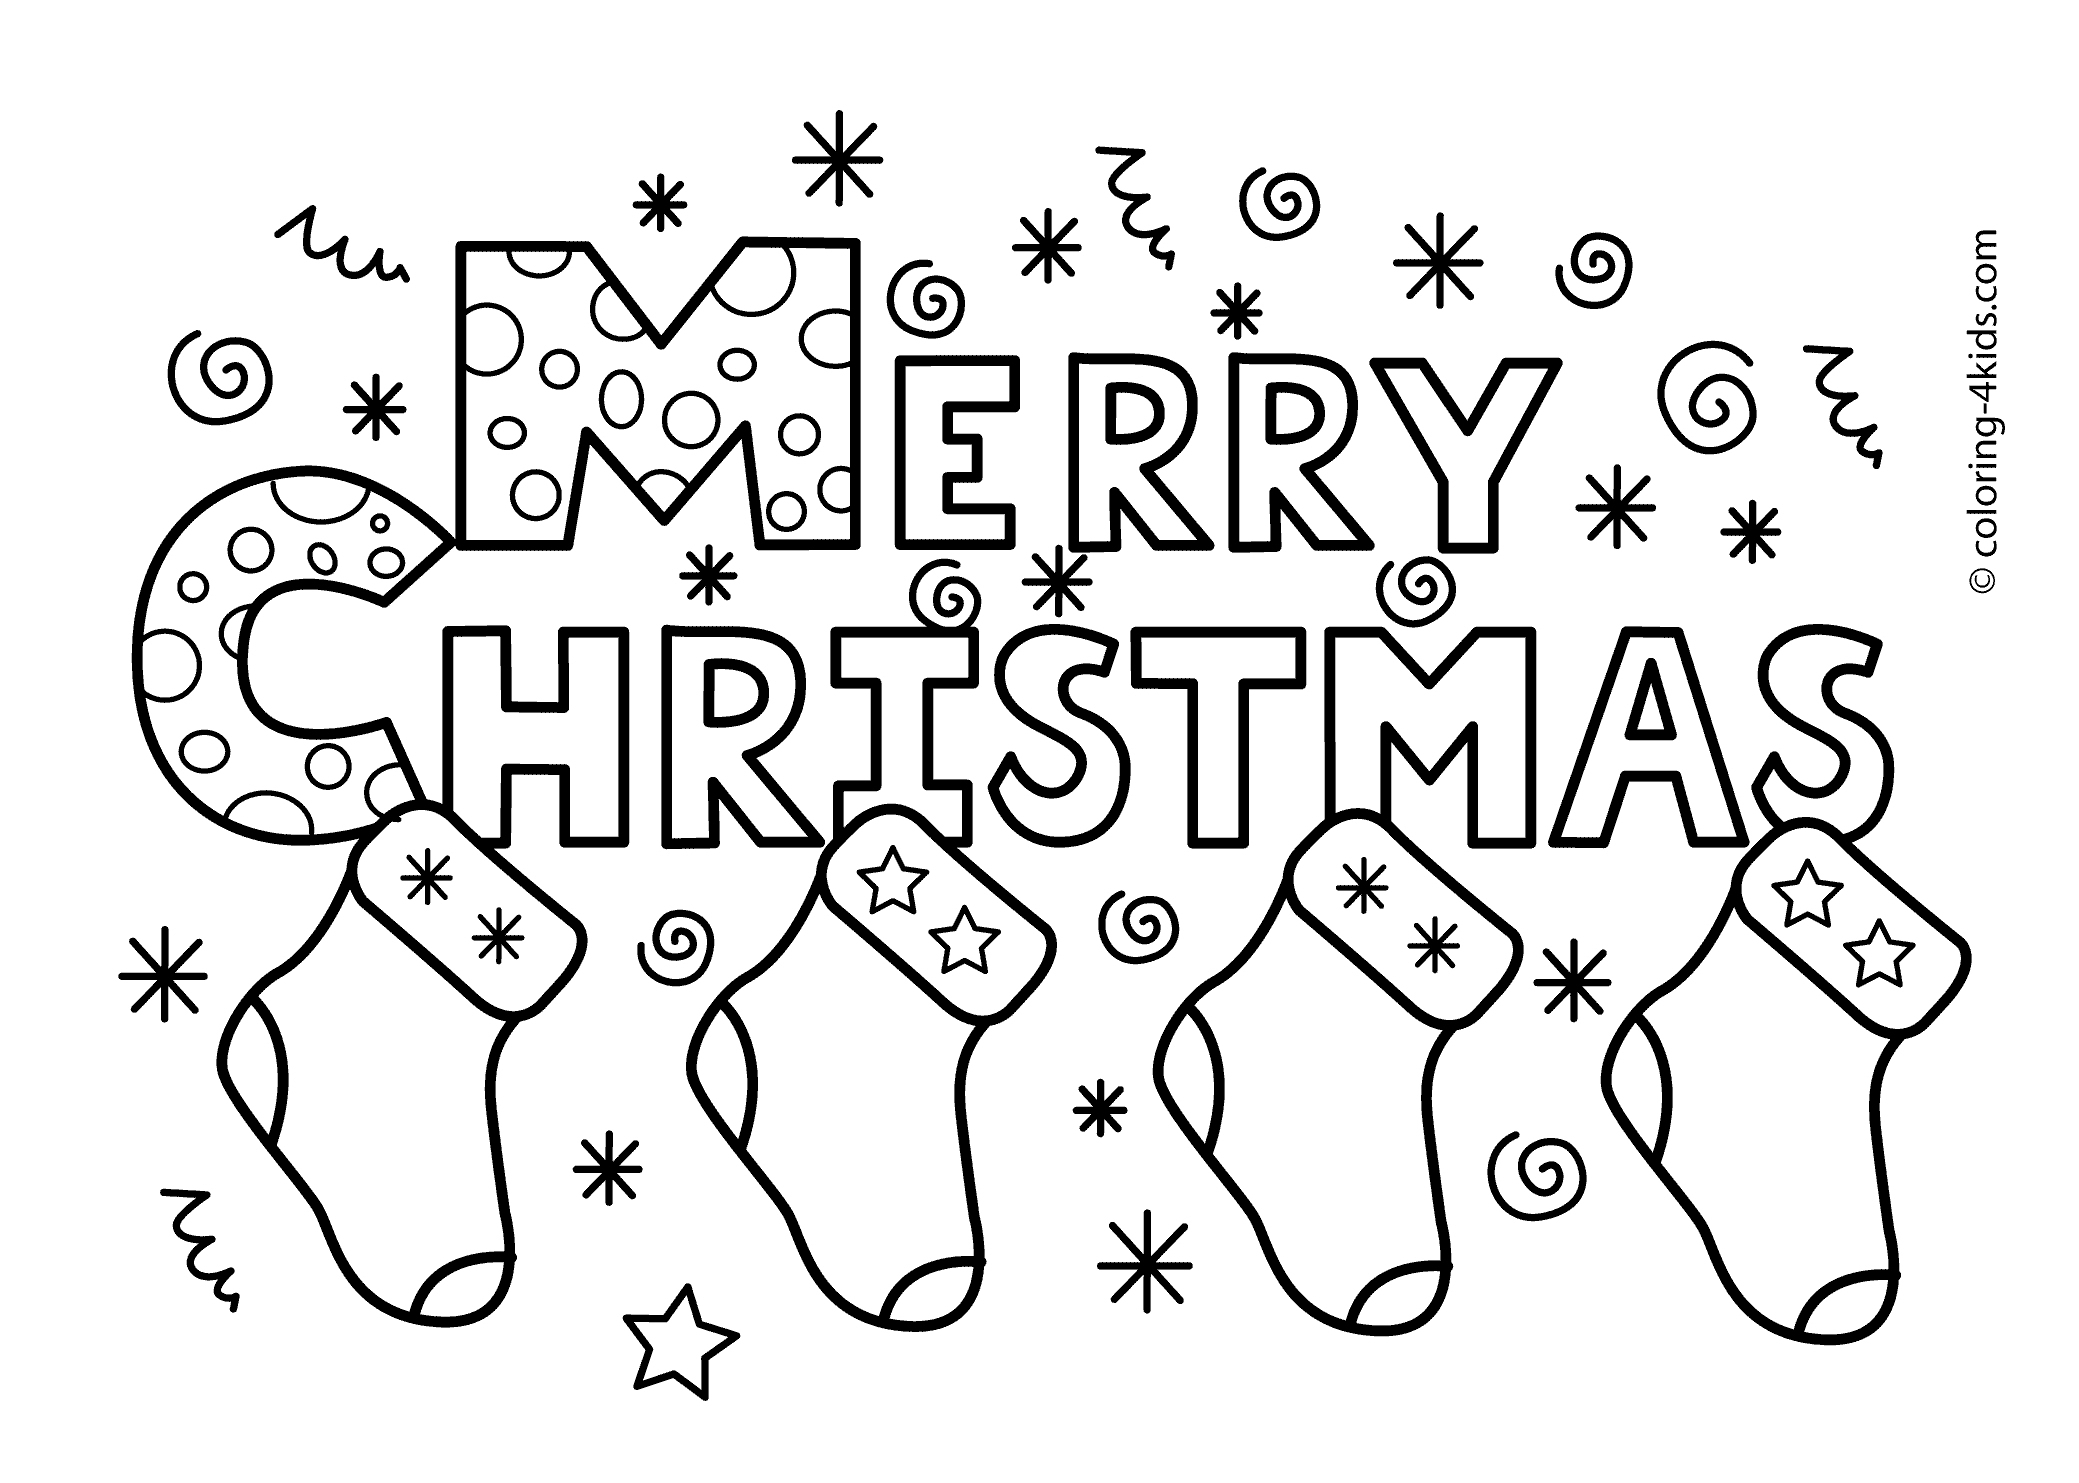 Free Printable Inspirational Coloring Pages - Saglik - Free Printable Christmas Coloring Pages